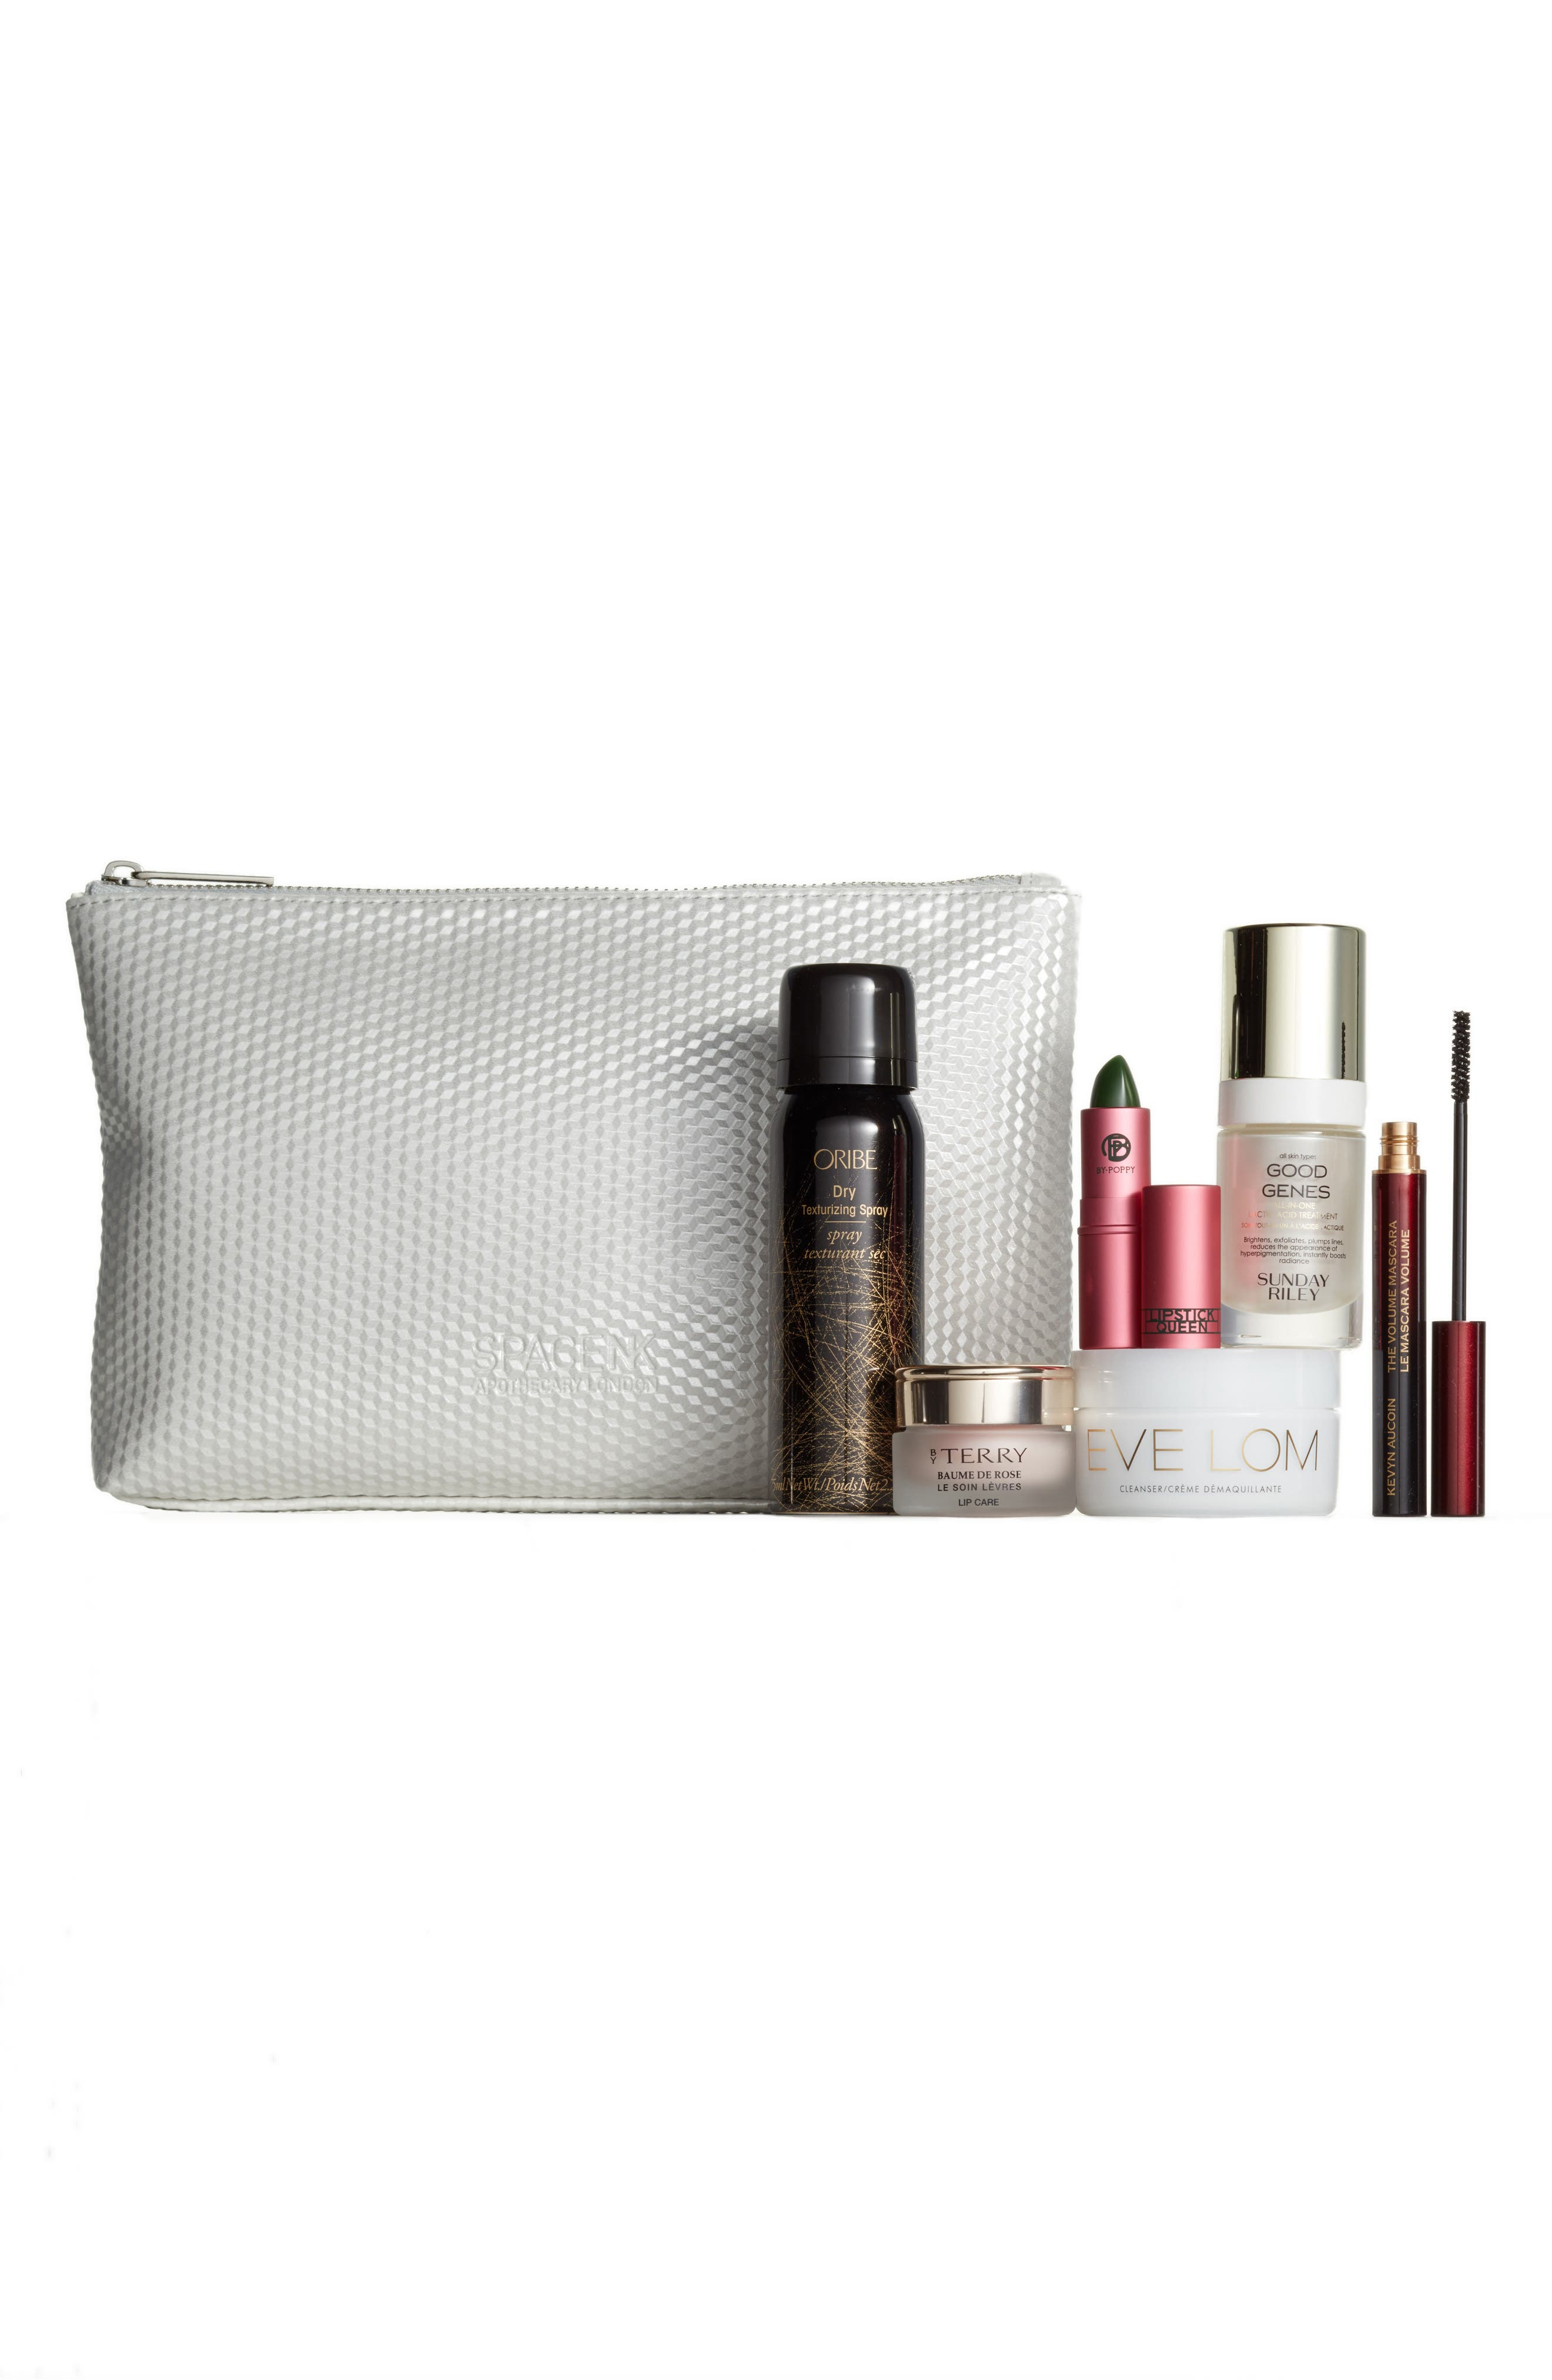 Main Image - SPACE.NK.apothecary The Best of Collection ($237.50 Value)